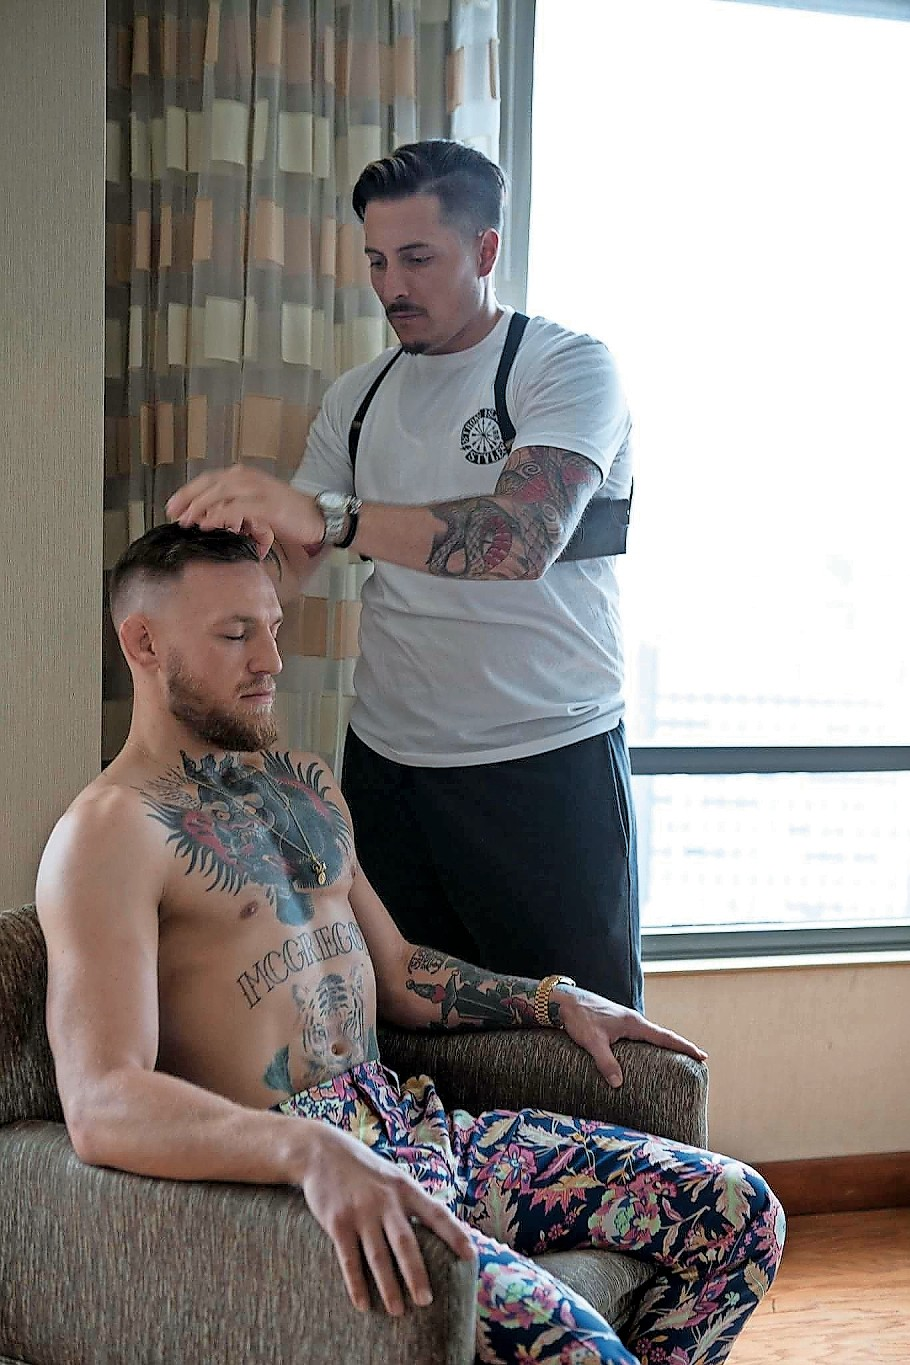 Basile said that he has given haircuts to several celebrities in the past, but he admitted that he was a little intimidated when he cut McGregor's hair.